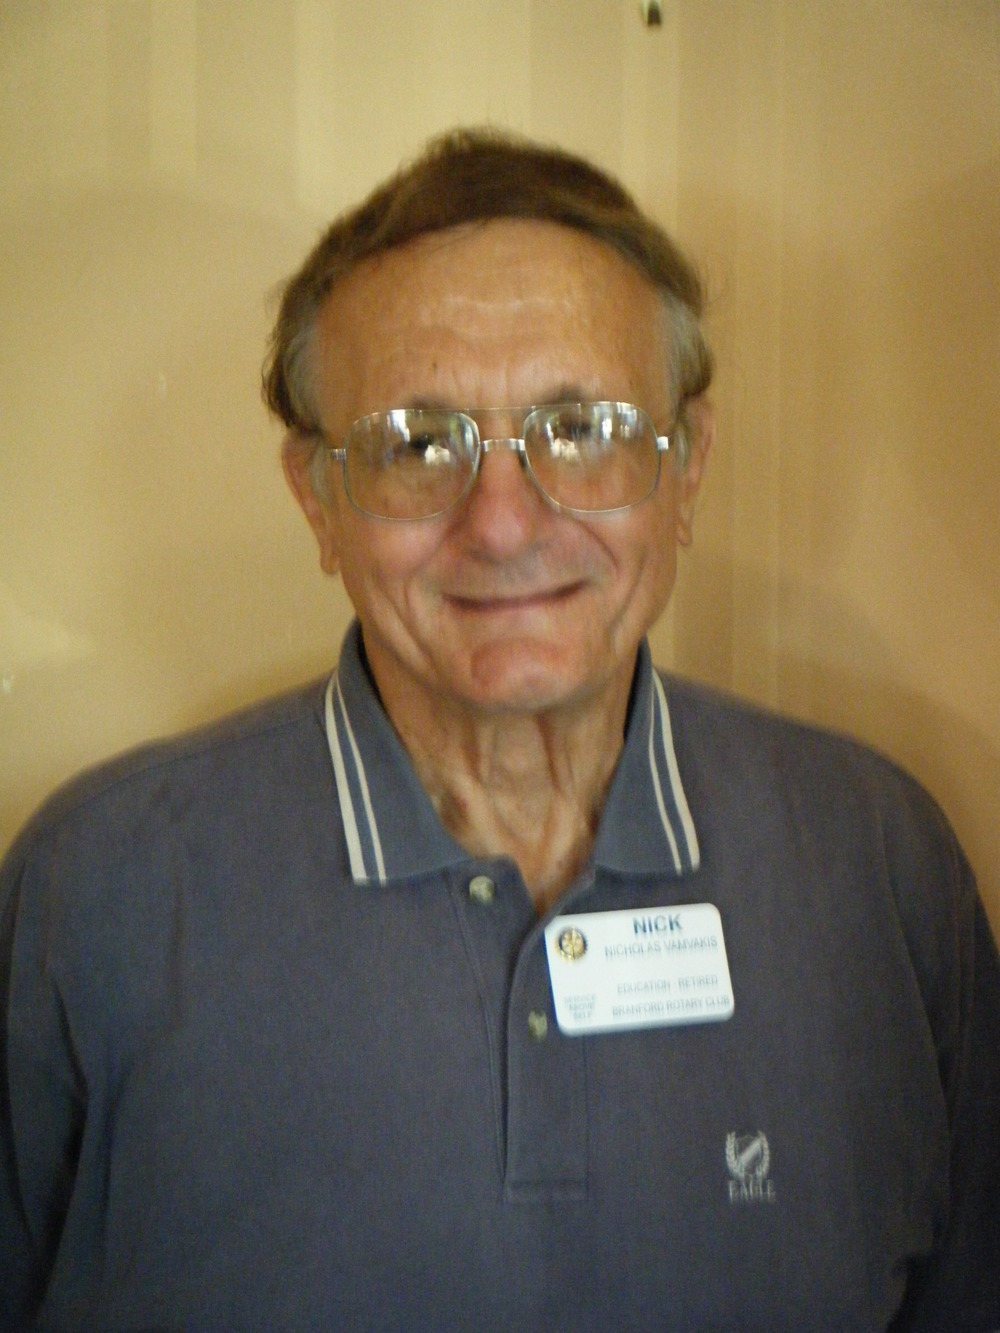 Nick Vamvakis<br>Teaching (Retired)